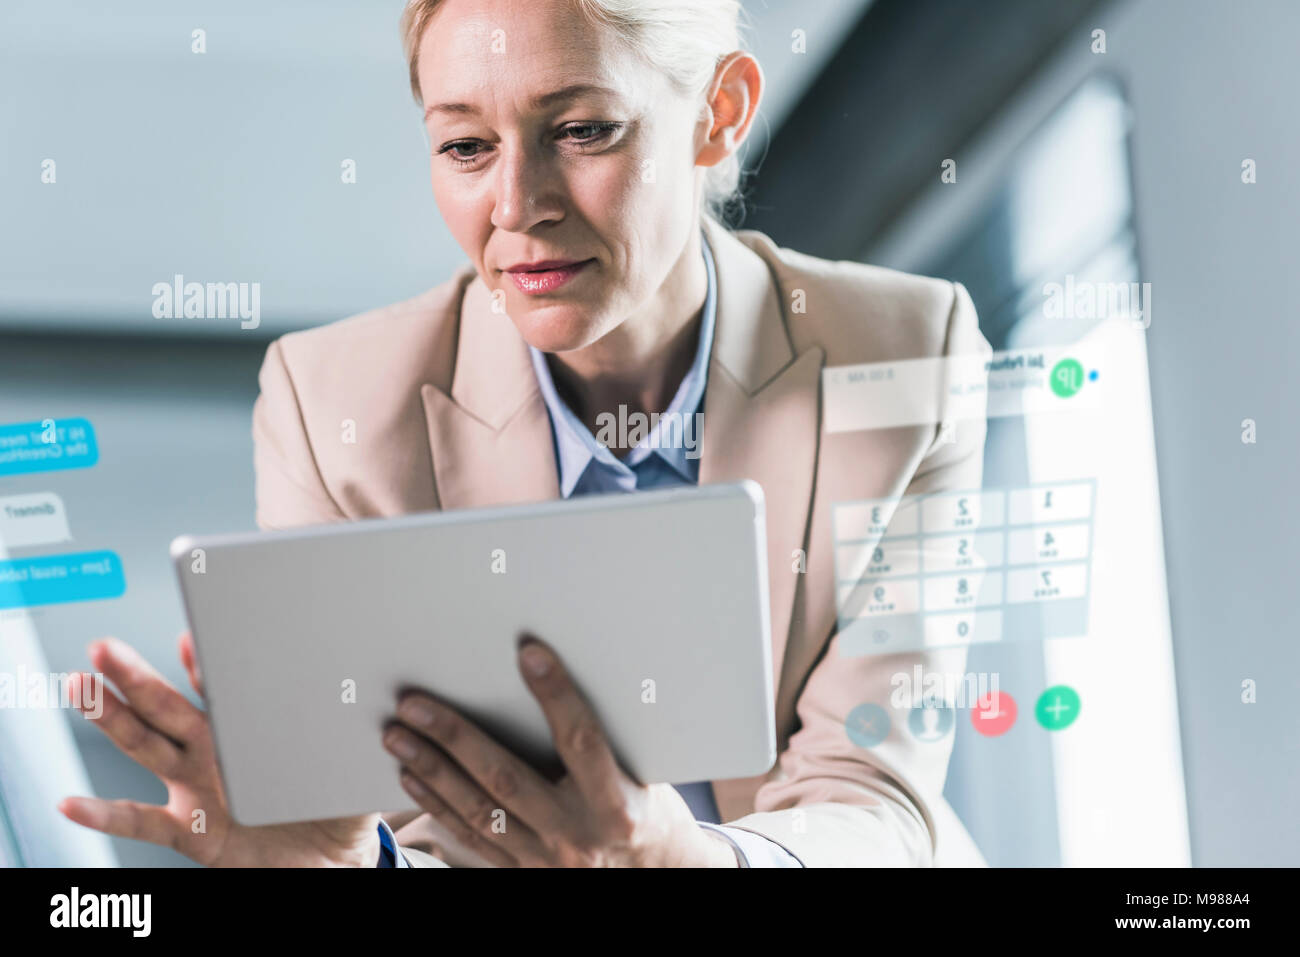 Businesswoman sitting in office, using digital tablet Stock Photo